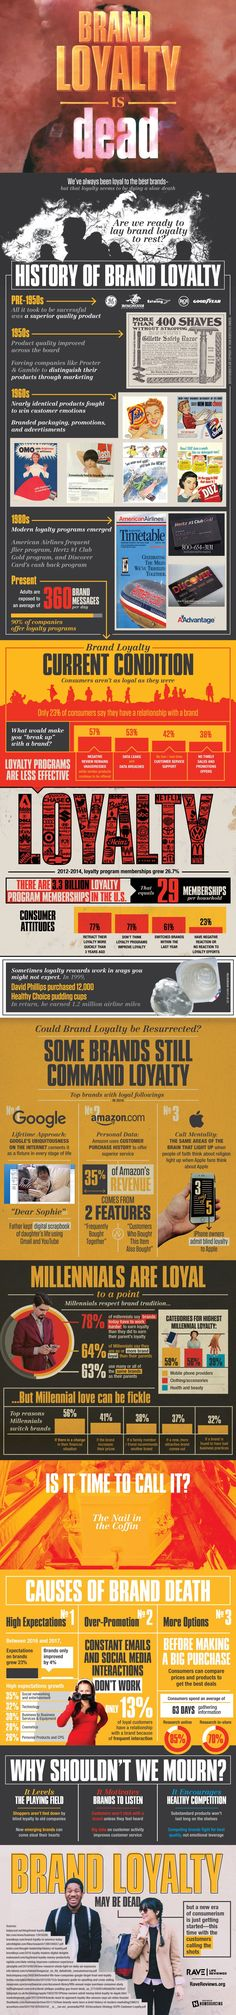 In a connected world with so many product options at our fingertips, is the marketing concept of brand loyalty still relevant? Sales And Marketing, Content Marketing, Marketing And Advertising, Digital Marketing, Loyalty Marketing, Social Marketing, Marketing Strategies, Brand Management, Public Relations